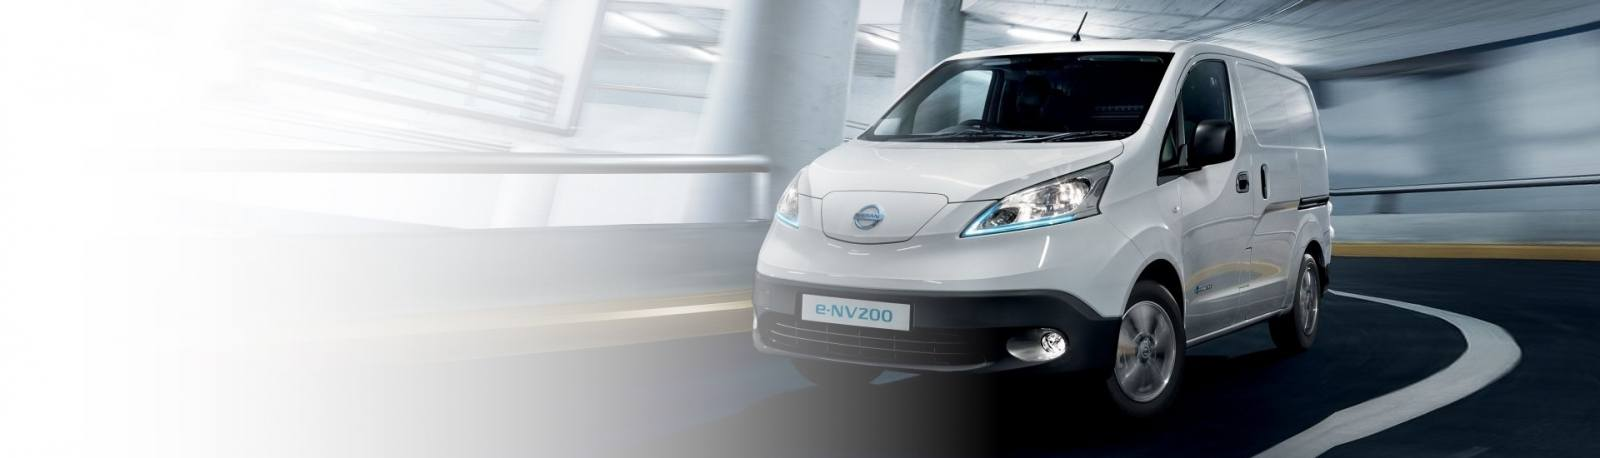 Nissan e-NV200 electric van for V2G Vehicle-to-Grid